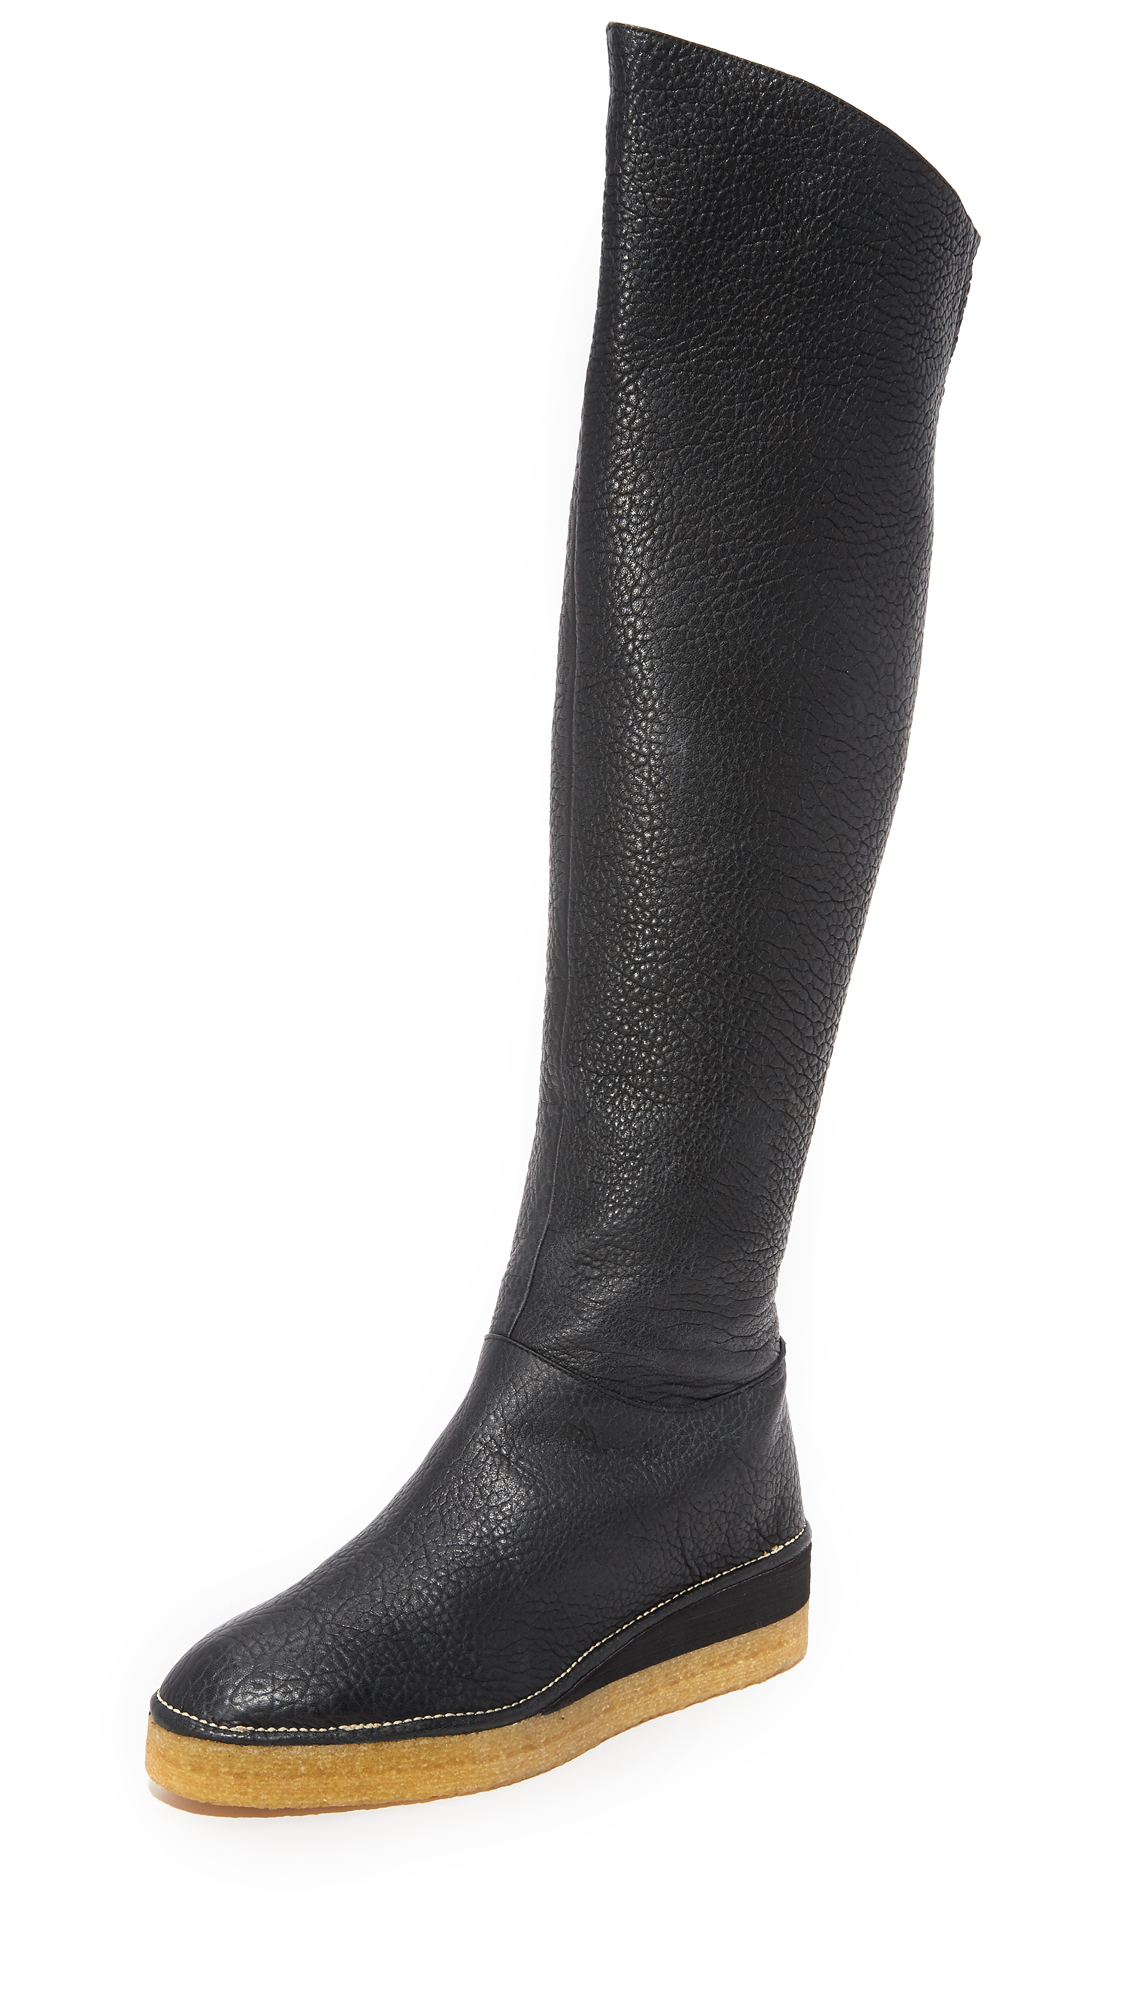 Rich, pebbled leather Zero + Maria Cornejo boots styled with a sculpted top line. A hidden zip secures the ankle and elastic insets relax the shaft. Foam platform and crepe sole. Leather: Lambskin. Made in Italy. Measurements